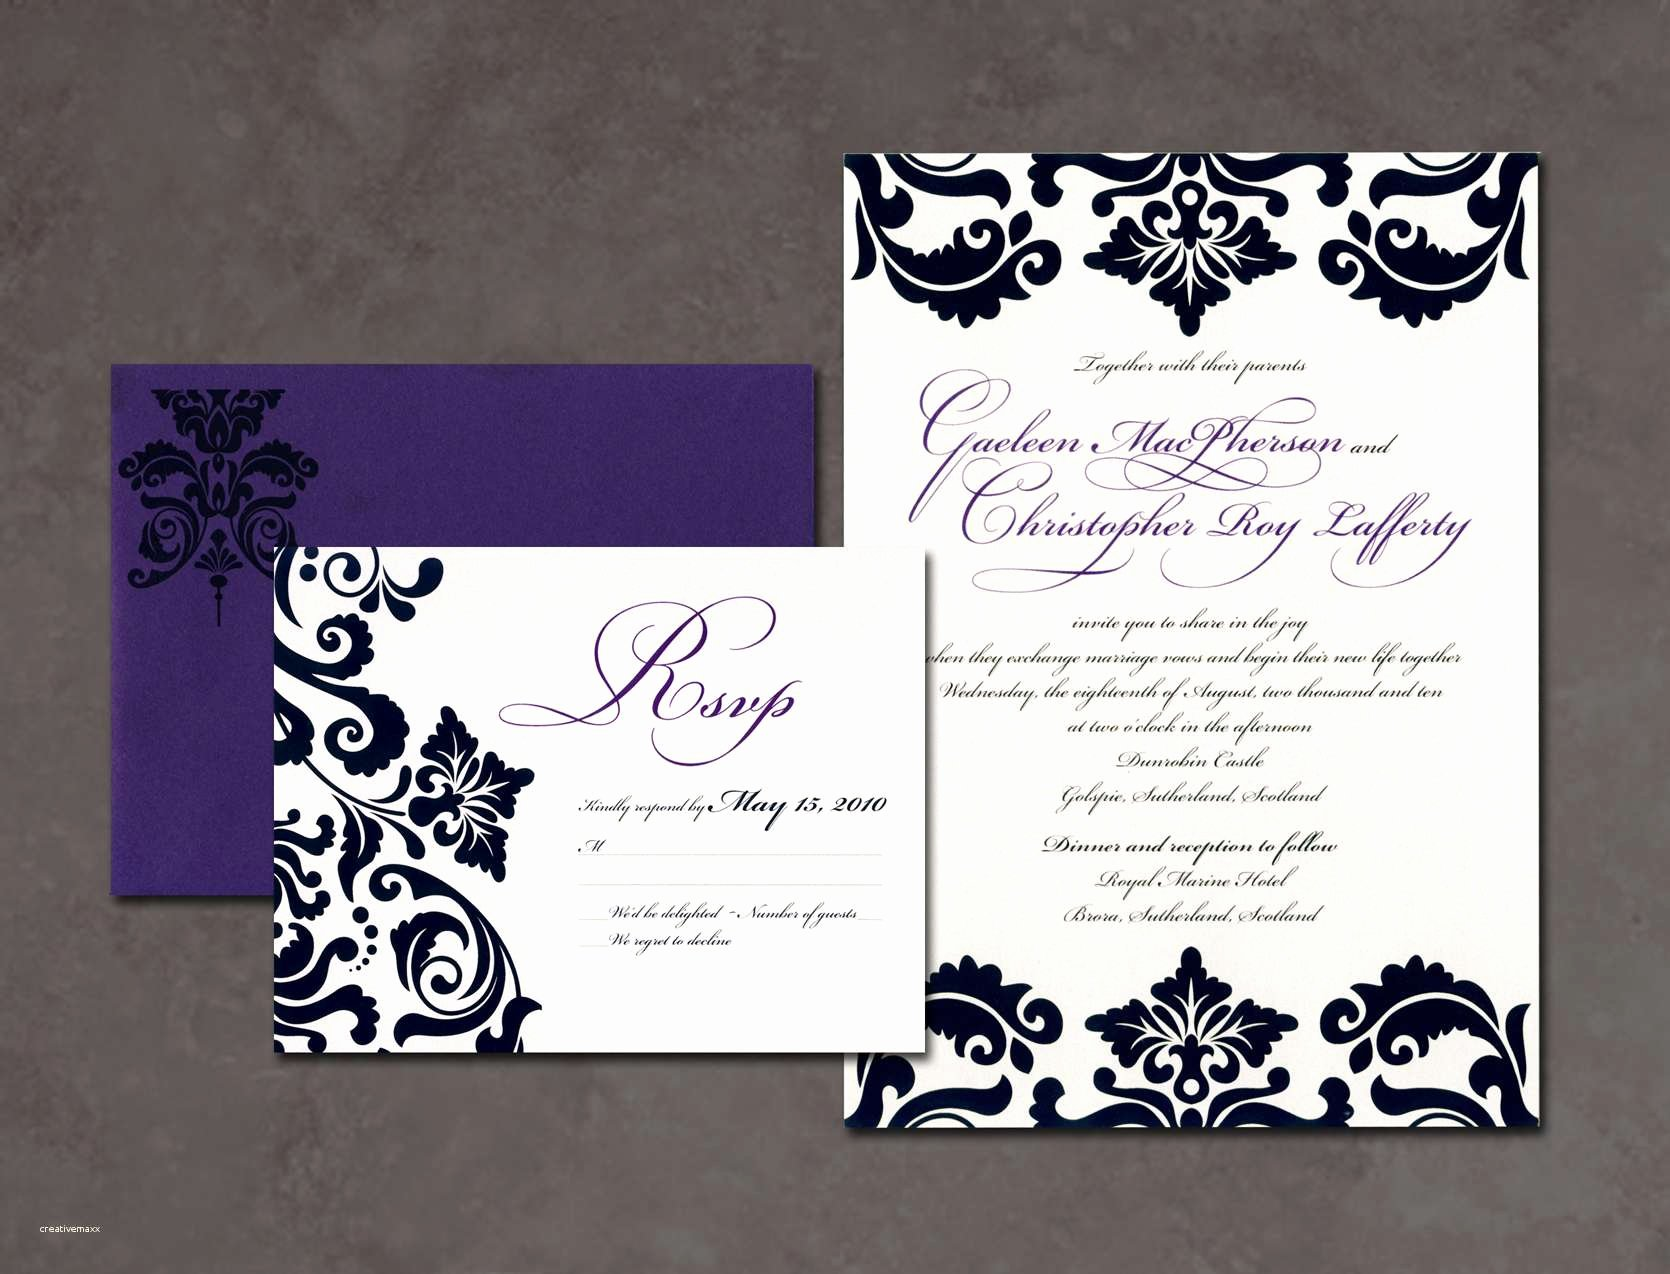 Word Wedding Invitation Template Elegant Luxury Blank Wedding Invitation Templates for Microsoft